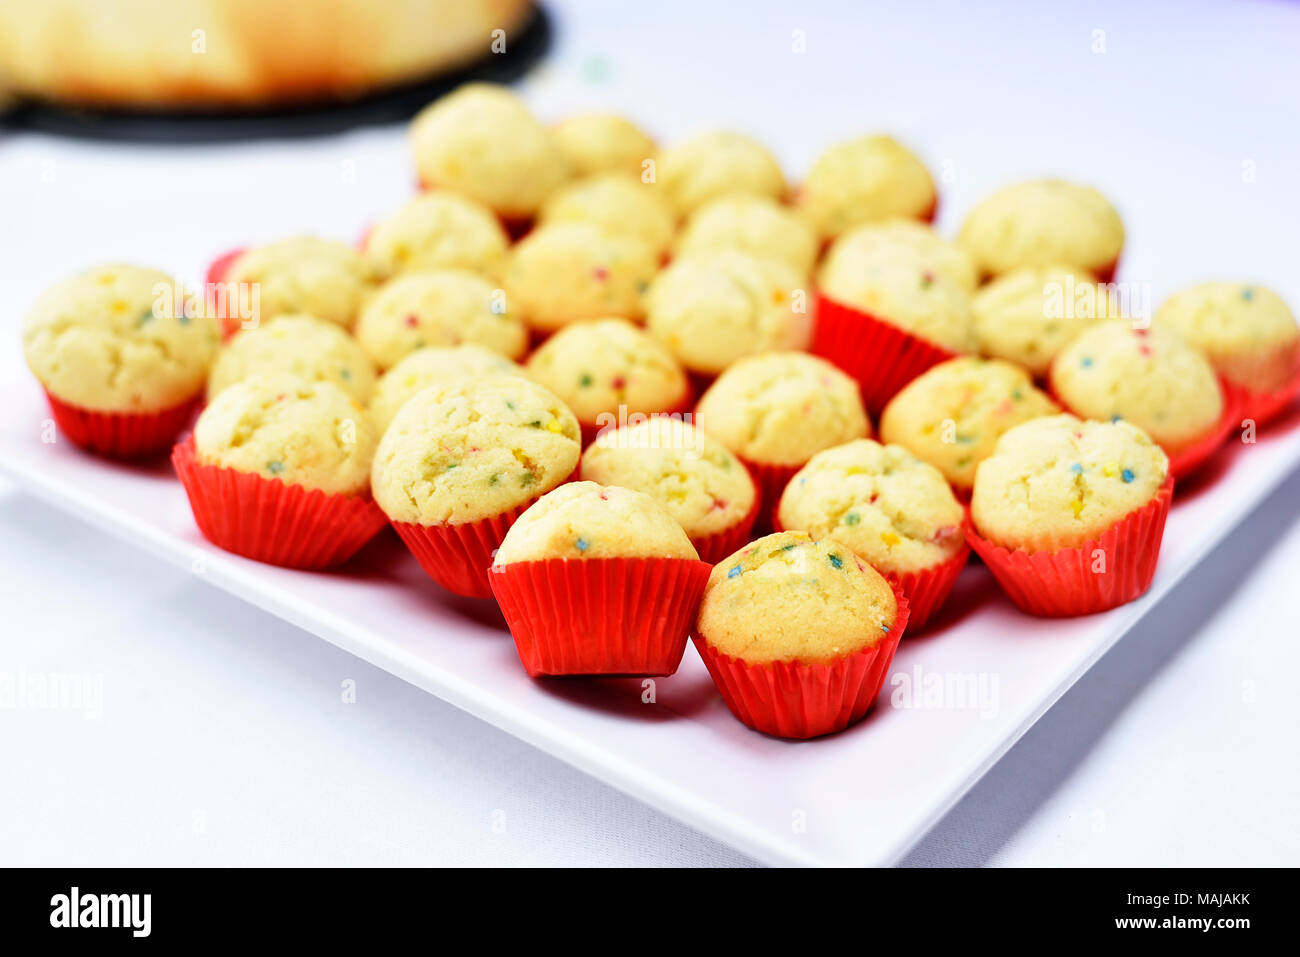 Delicious cupcakes on a white plate, dessert arrangement. - Stock Image